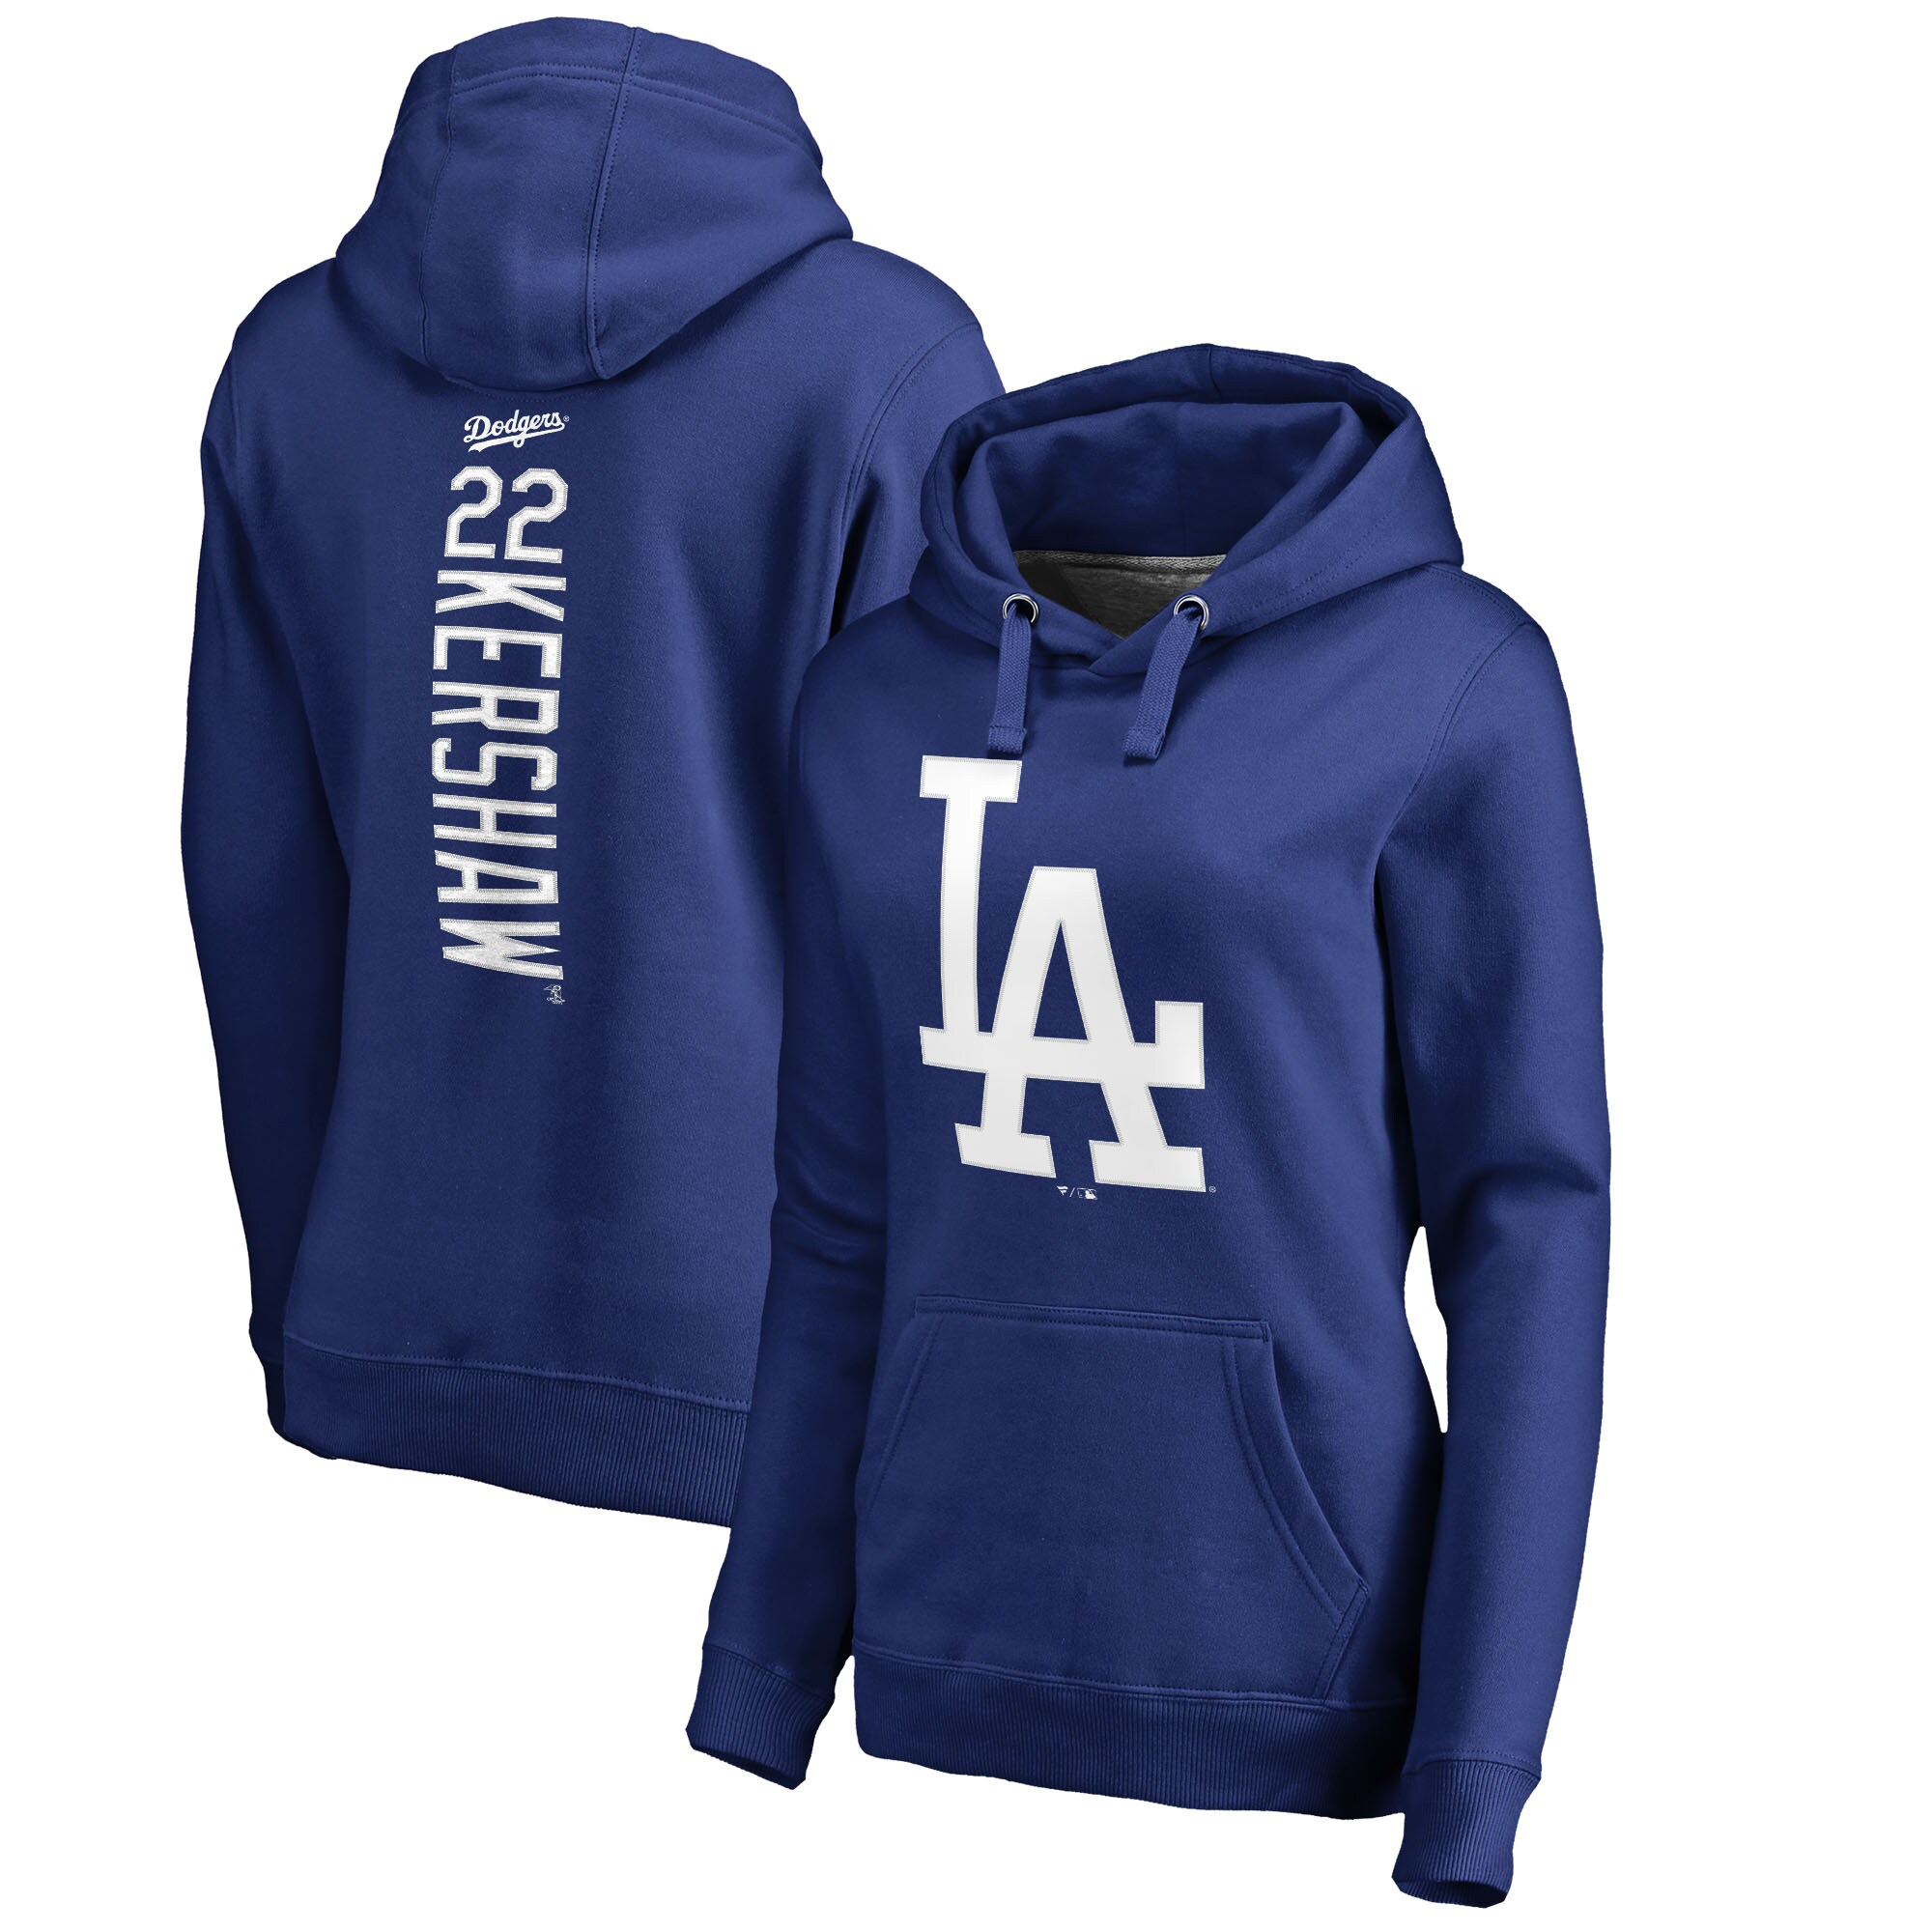 Clayton Kershaw Los Angeles Dodgers Fanatics Branded Women's Backer Pullover Hoodie - Royal